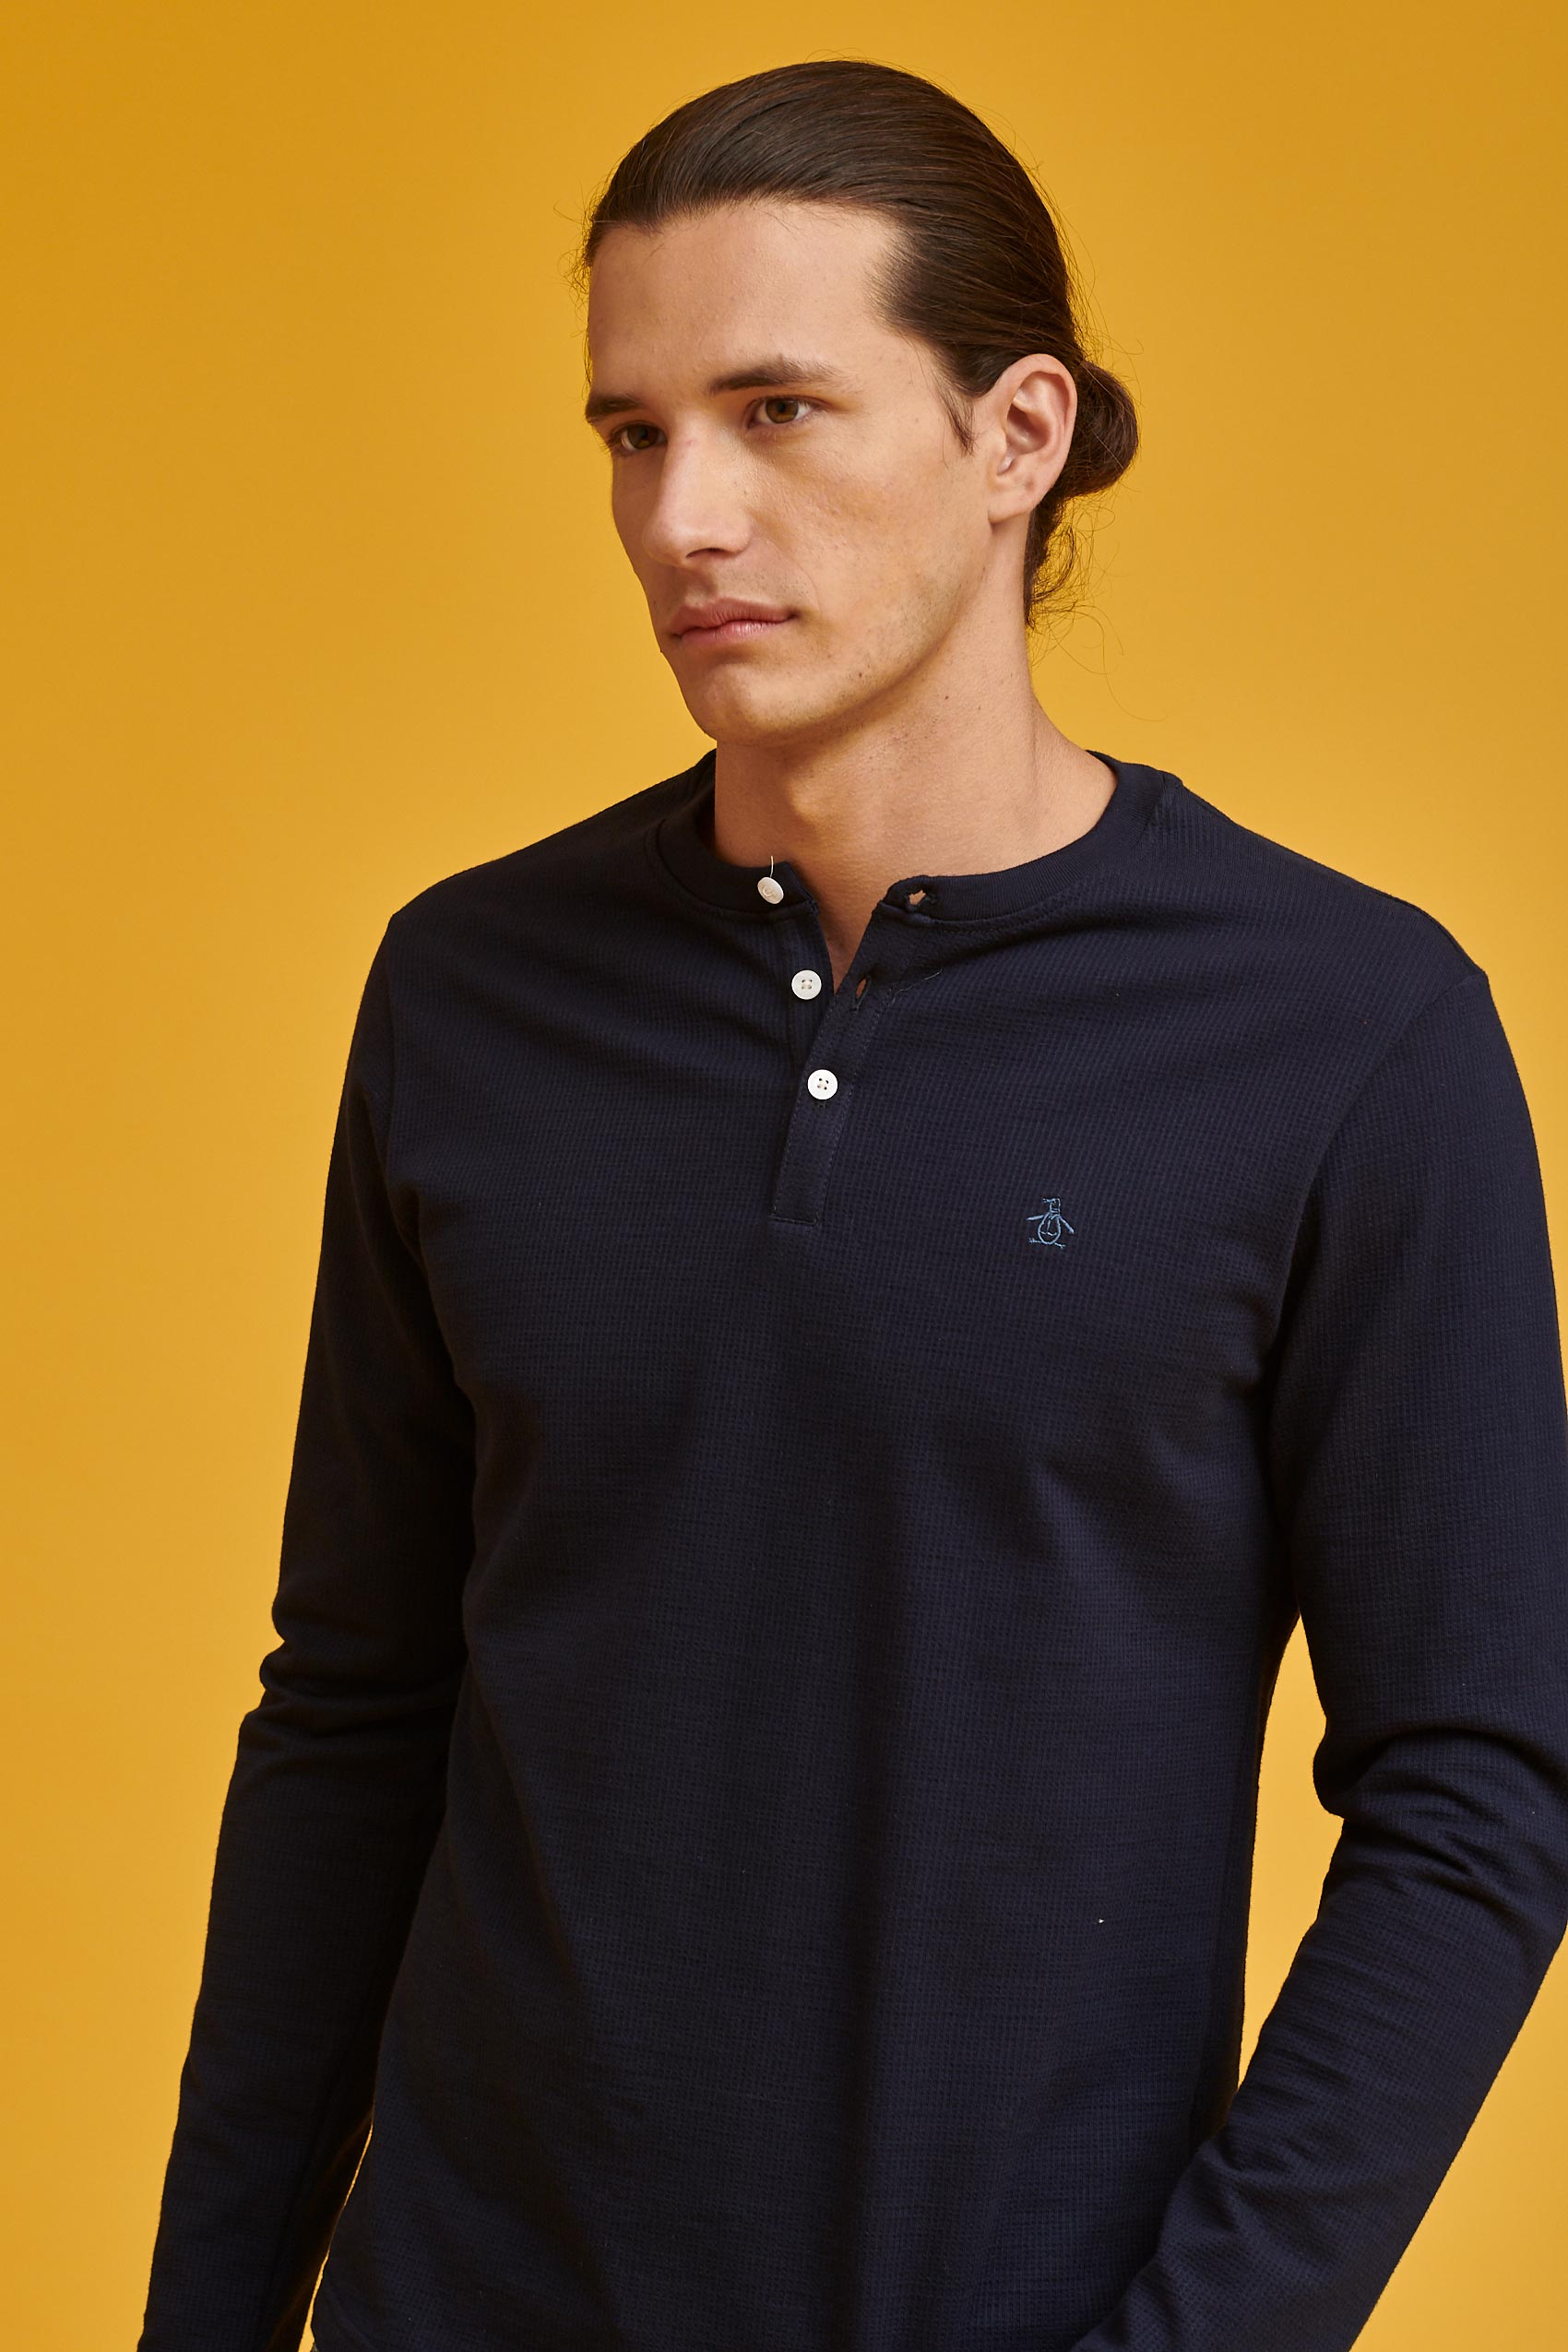 penguin_ls-waffle-henley_00-14-2020__picture-14867